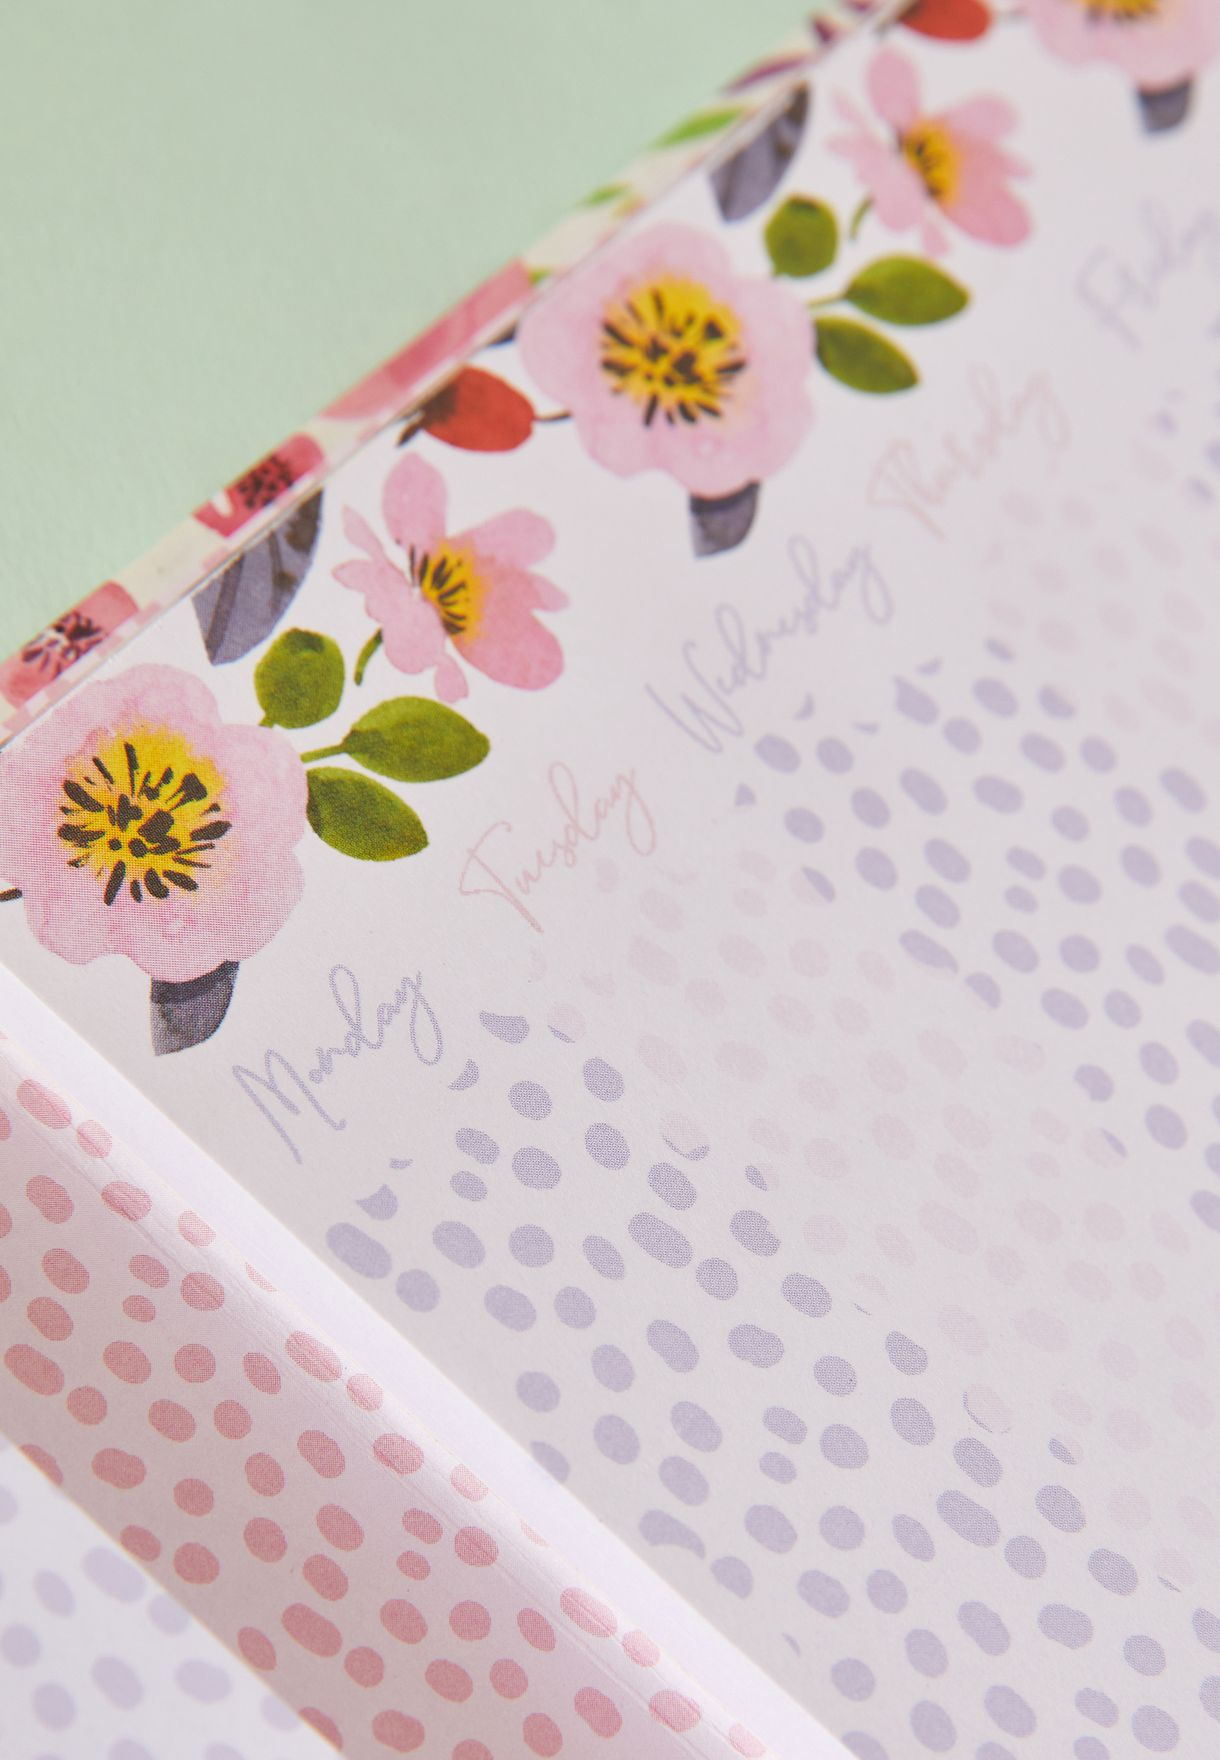 Weekly Planner With A Document Pocket